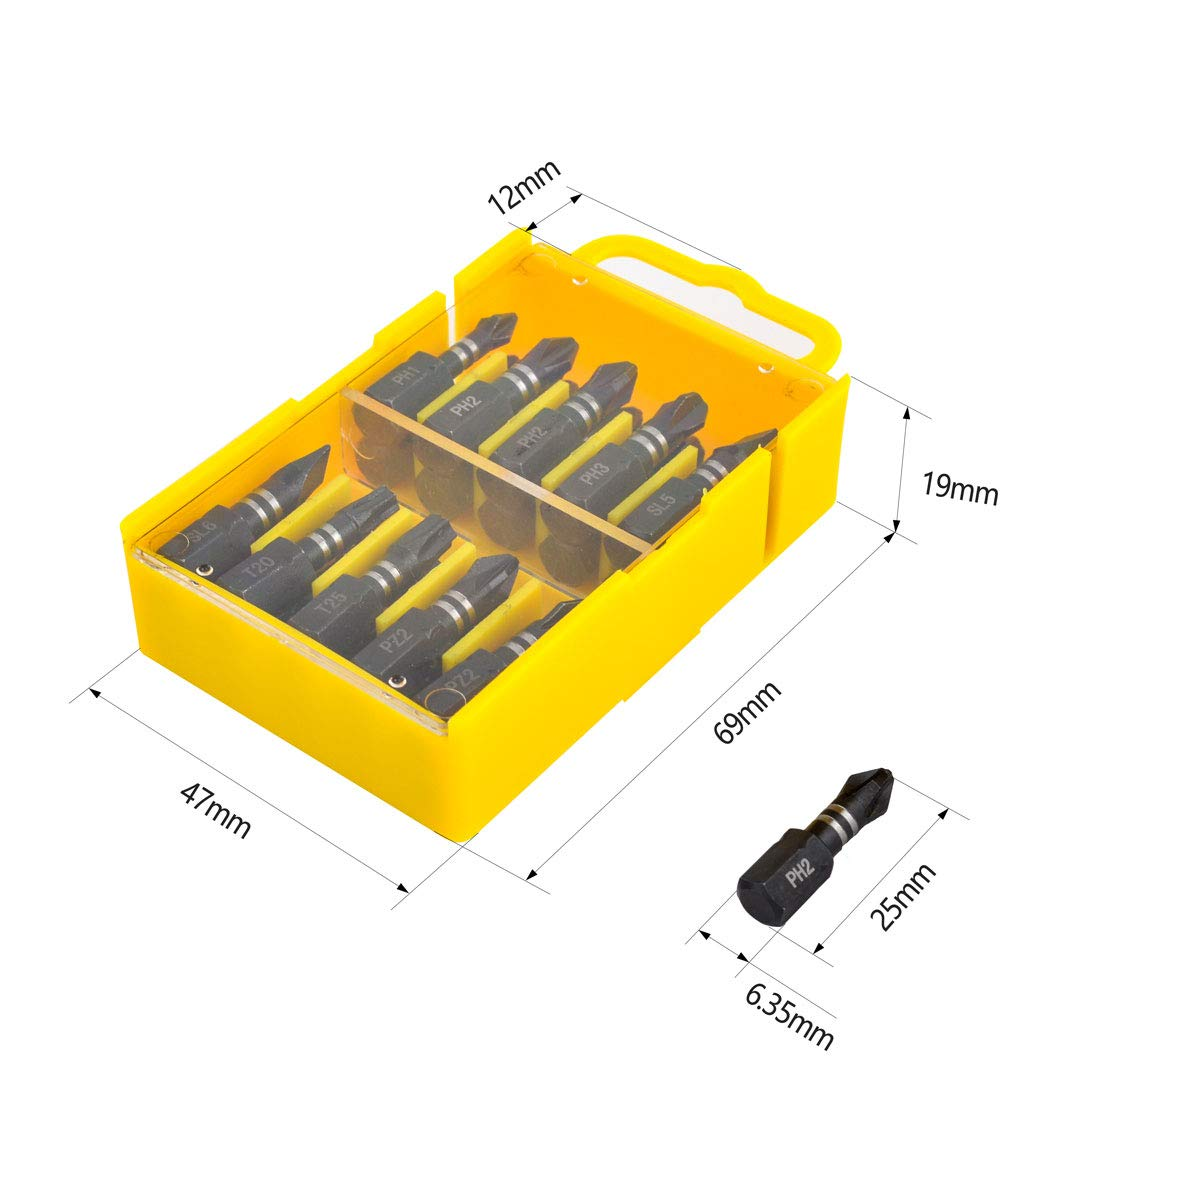 Gunpla 20 Pieces Impact Screwdriver Bits Set Single Ended Heavy Duty Screwdriving Bit Driver Repair Tool Kit for Phillips Torx Pozidriv Slotted Head Screw Drivers with Storage Case